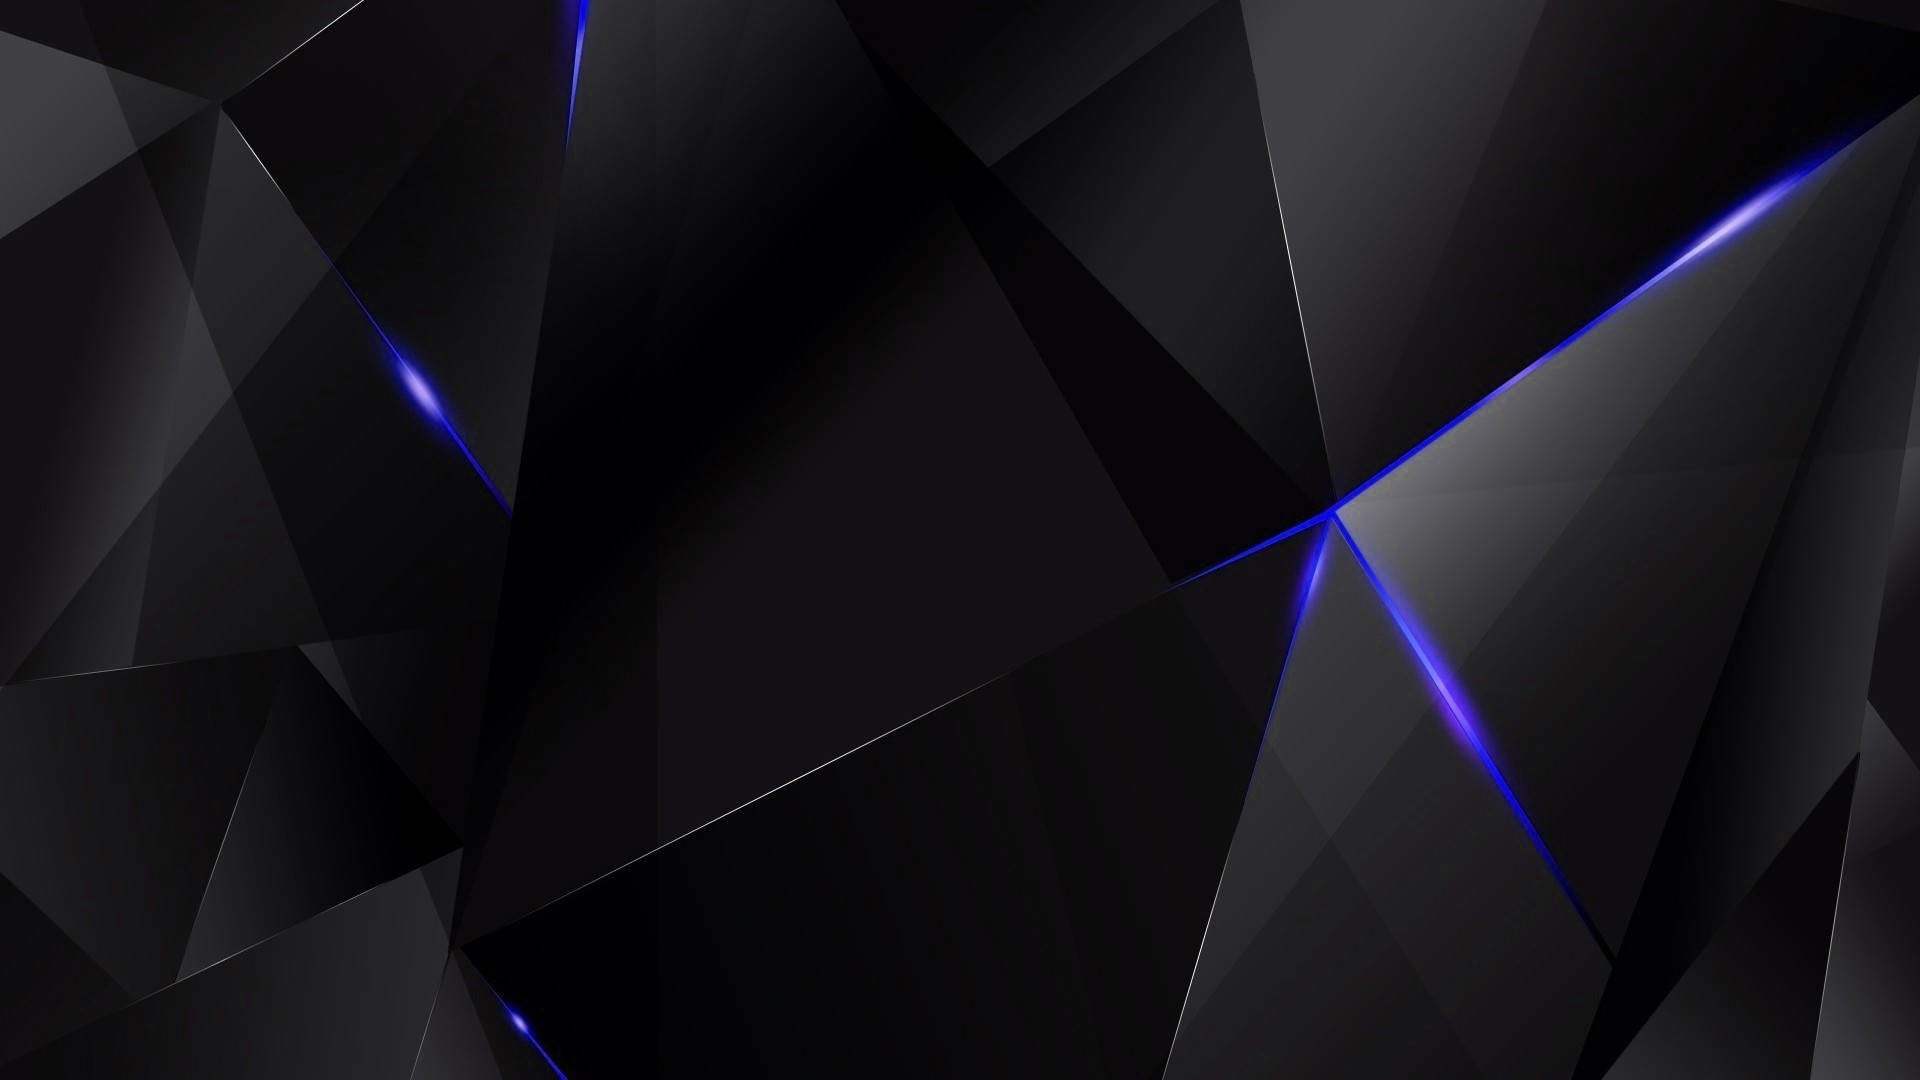 Free Cool Black Blue Shards Chrome Extension Hd Wallpaper Theme